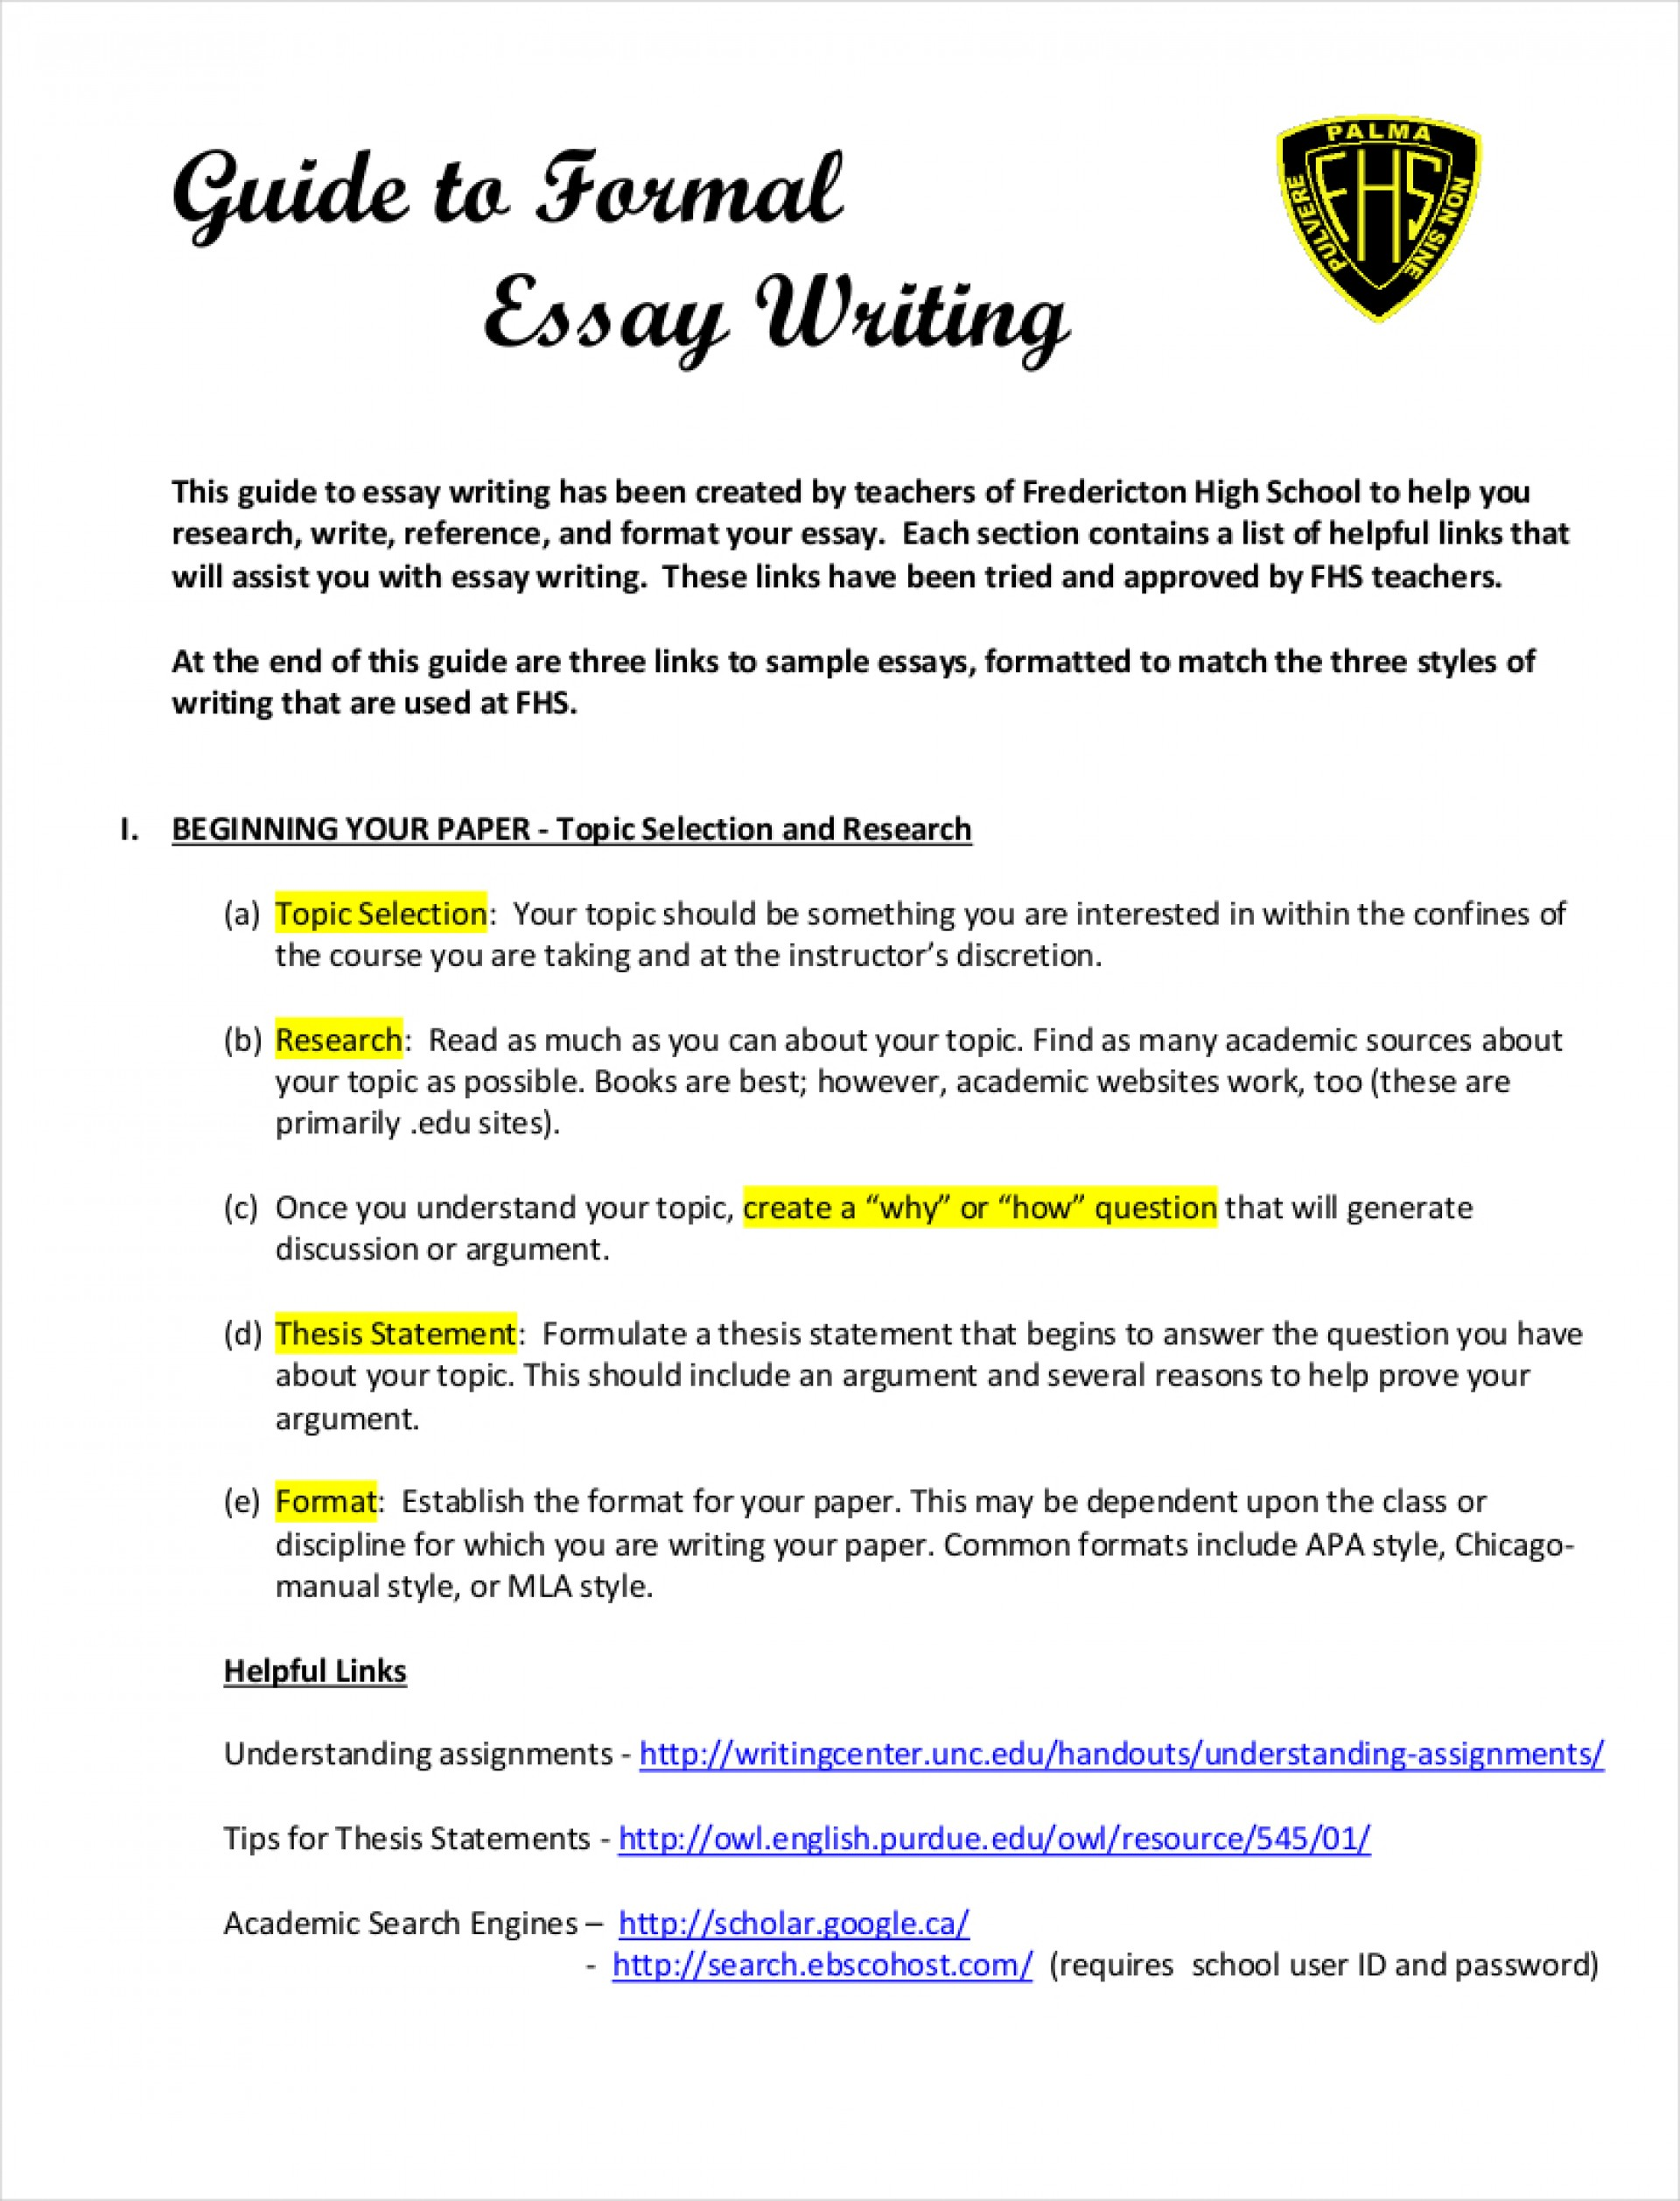 004 Essay Example Samples Of Formal Essays Free Pdf Format Download Writing Styles Sample G Creative Good Comparing Ielts On Analysis English Persuasive Unforgettable In Examples For High School Students 1920